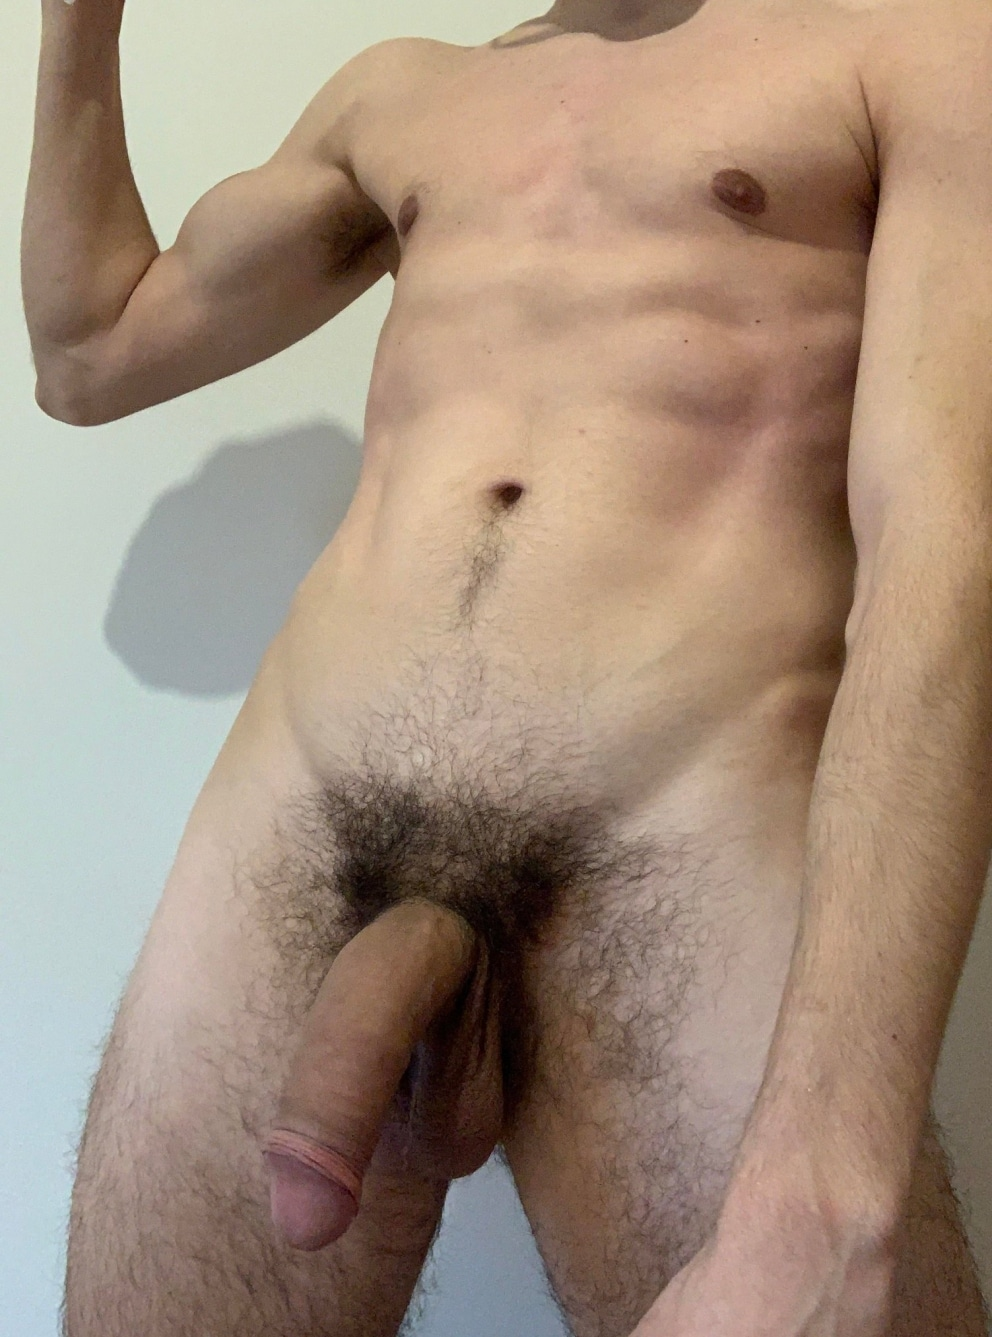 Hairy cock with shaved balls